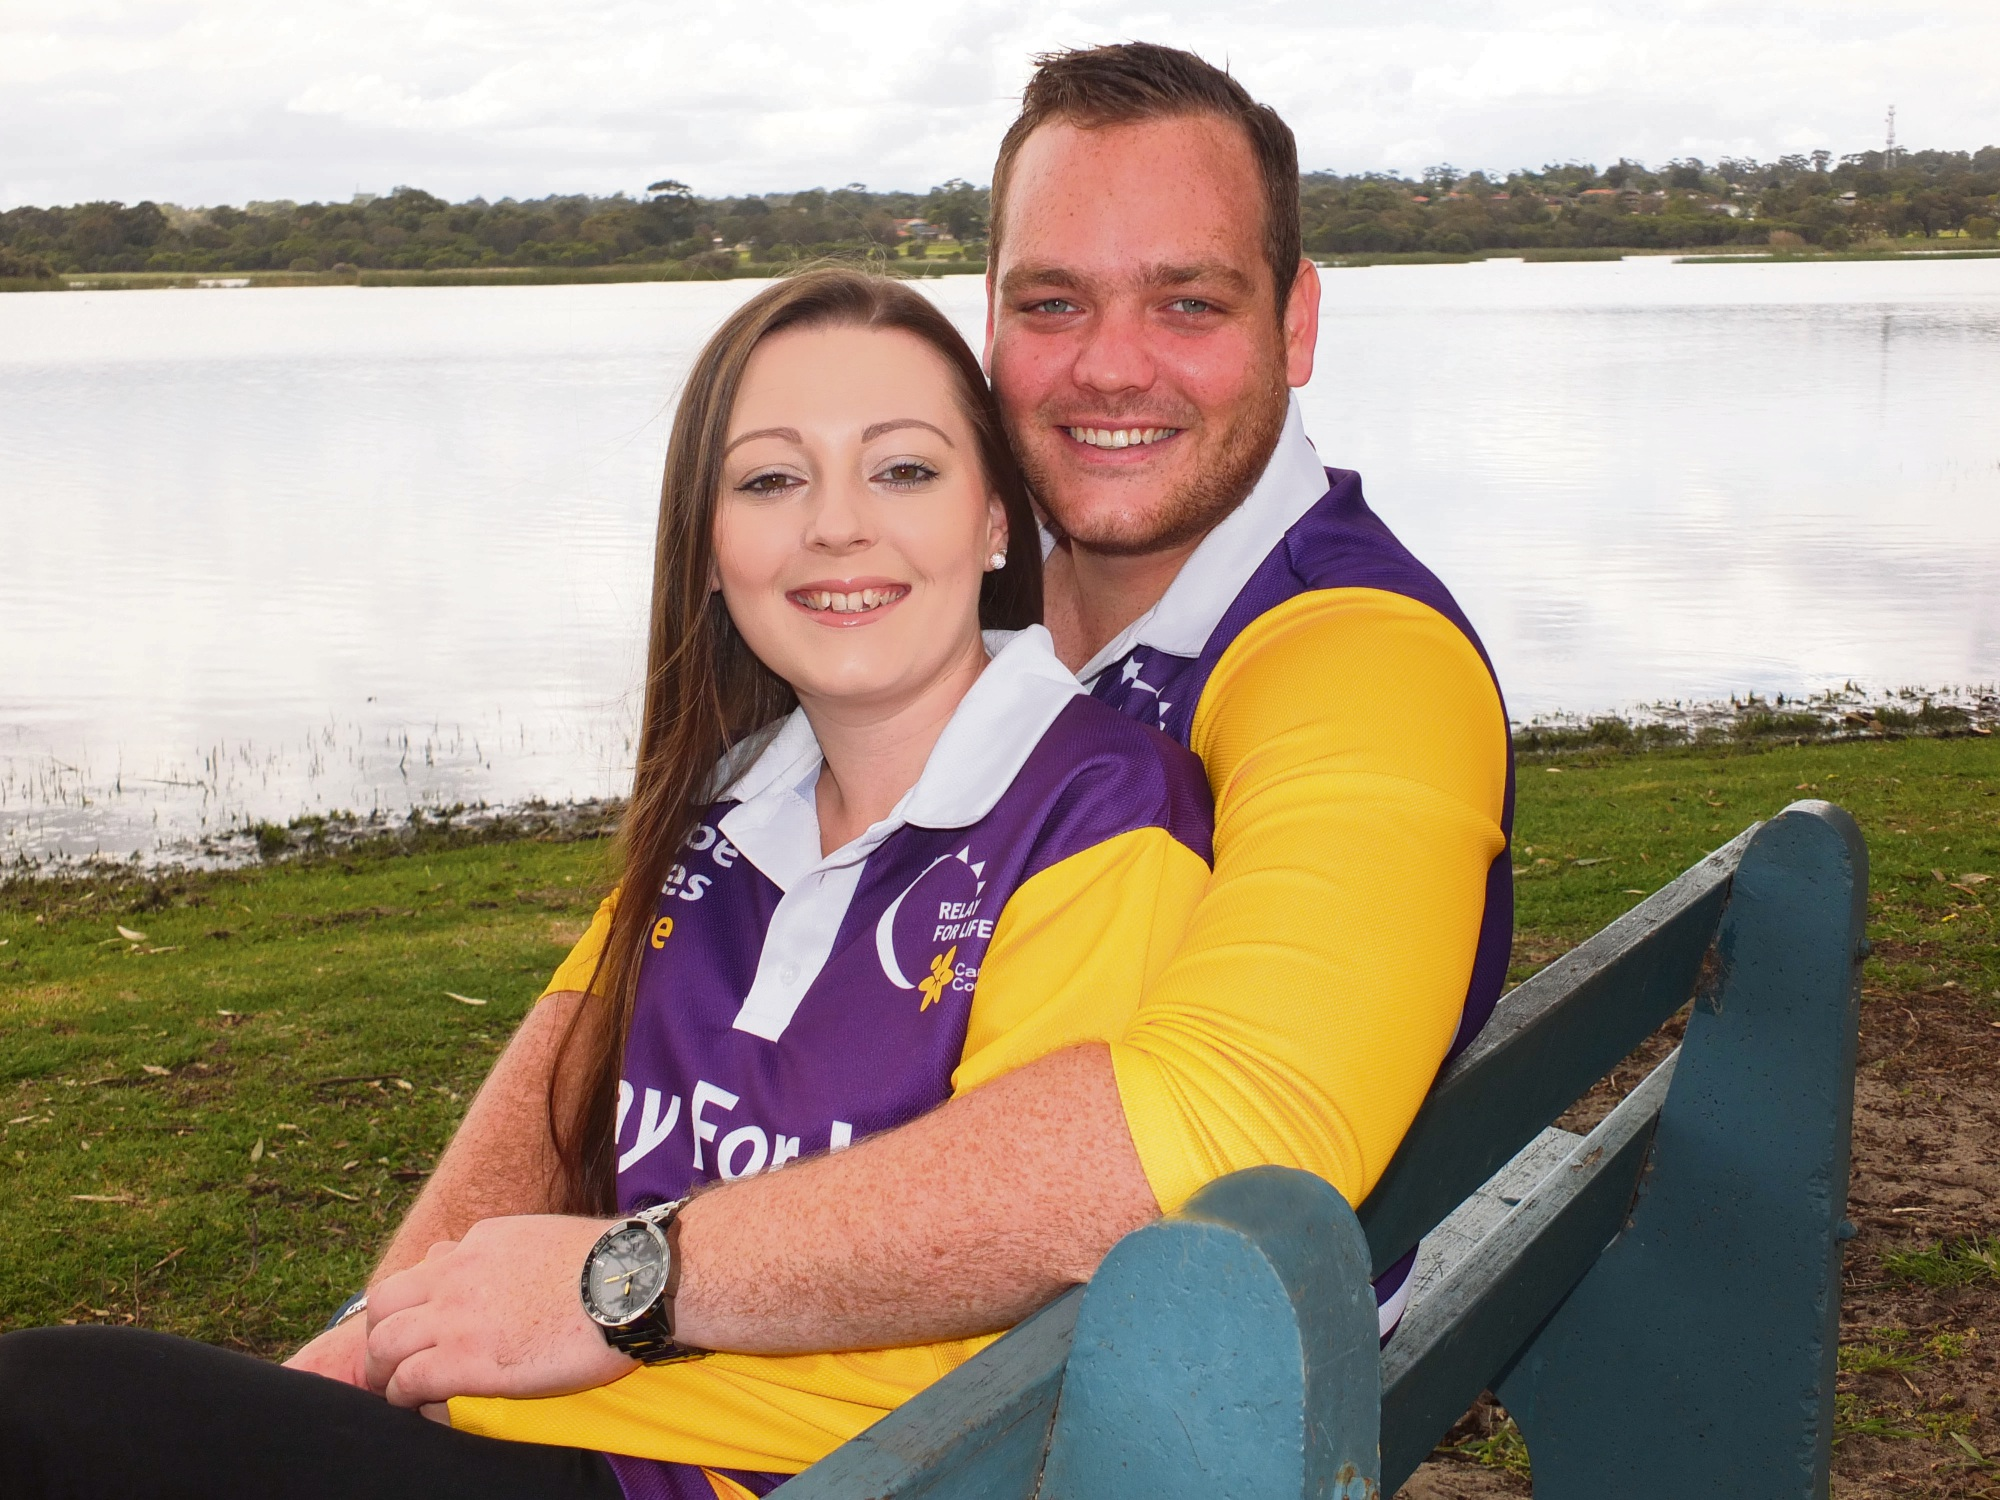 Amelia Hewison and Robi Boscarino, who met at the 2008 Relay for Life, will be getting married in a few weeks.